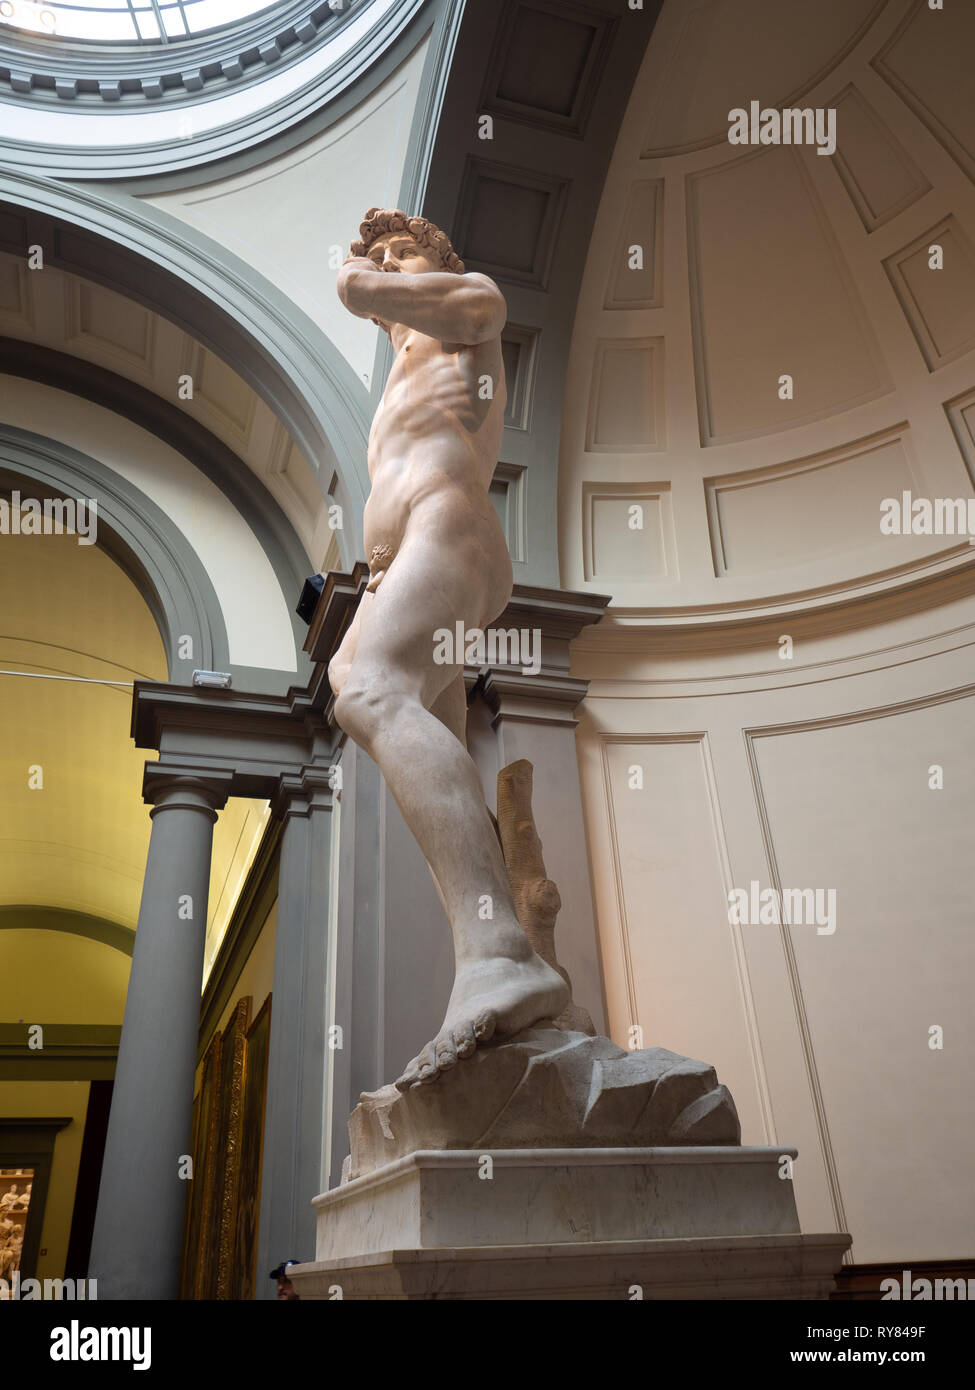 Figure of David, made by Michelangelo and exhibited in the Gallery of the Academy in Florence. - Stock Image